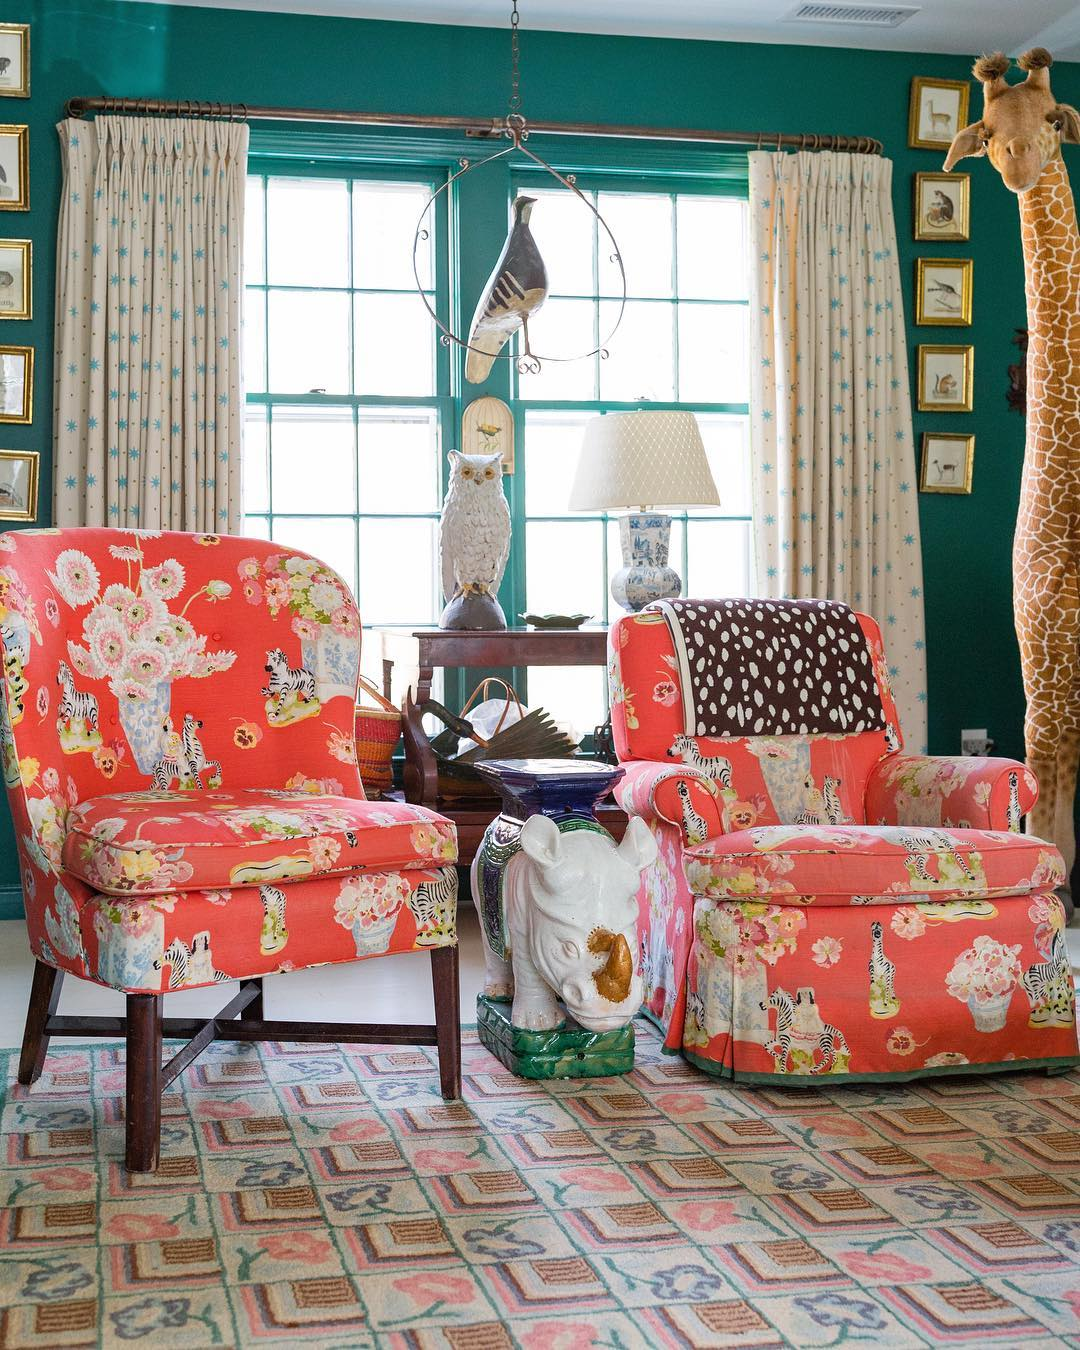 Living room in a green and coral color scheme with an animal motif interior design.